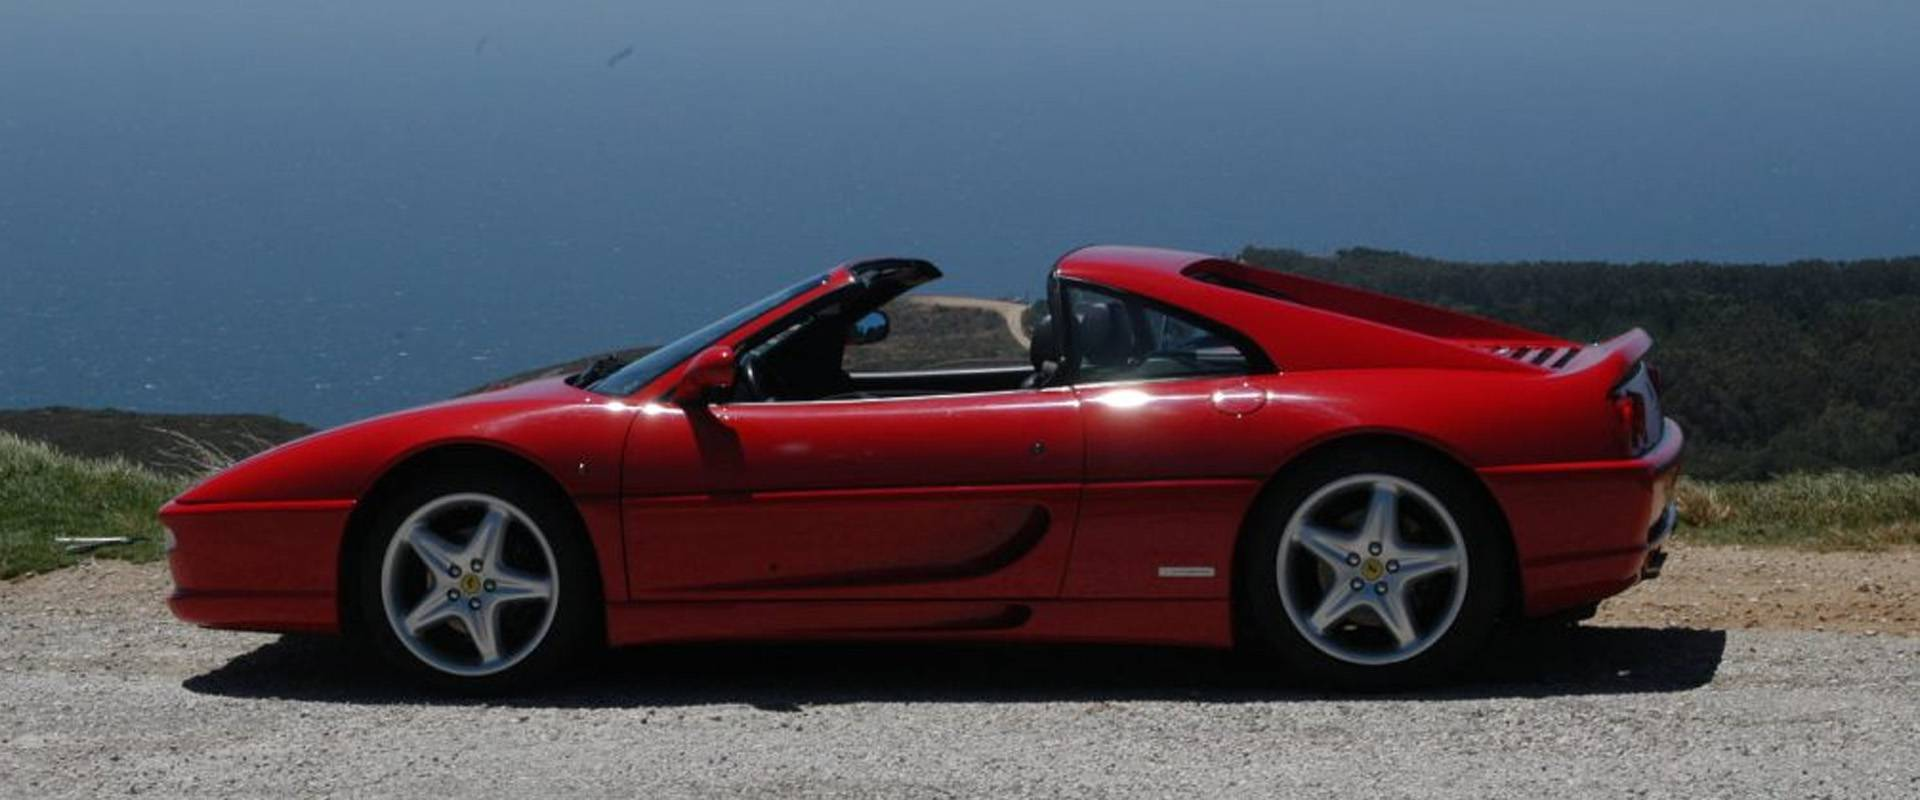 Our Genesis Supercar Ferrari F355 GTS